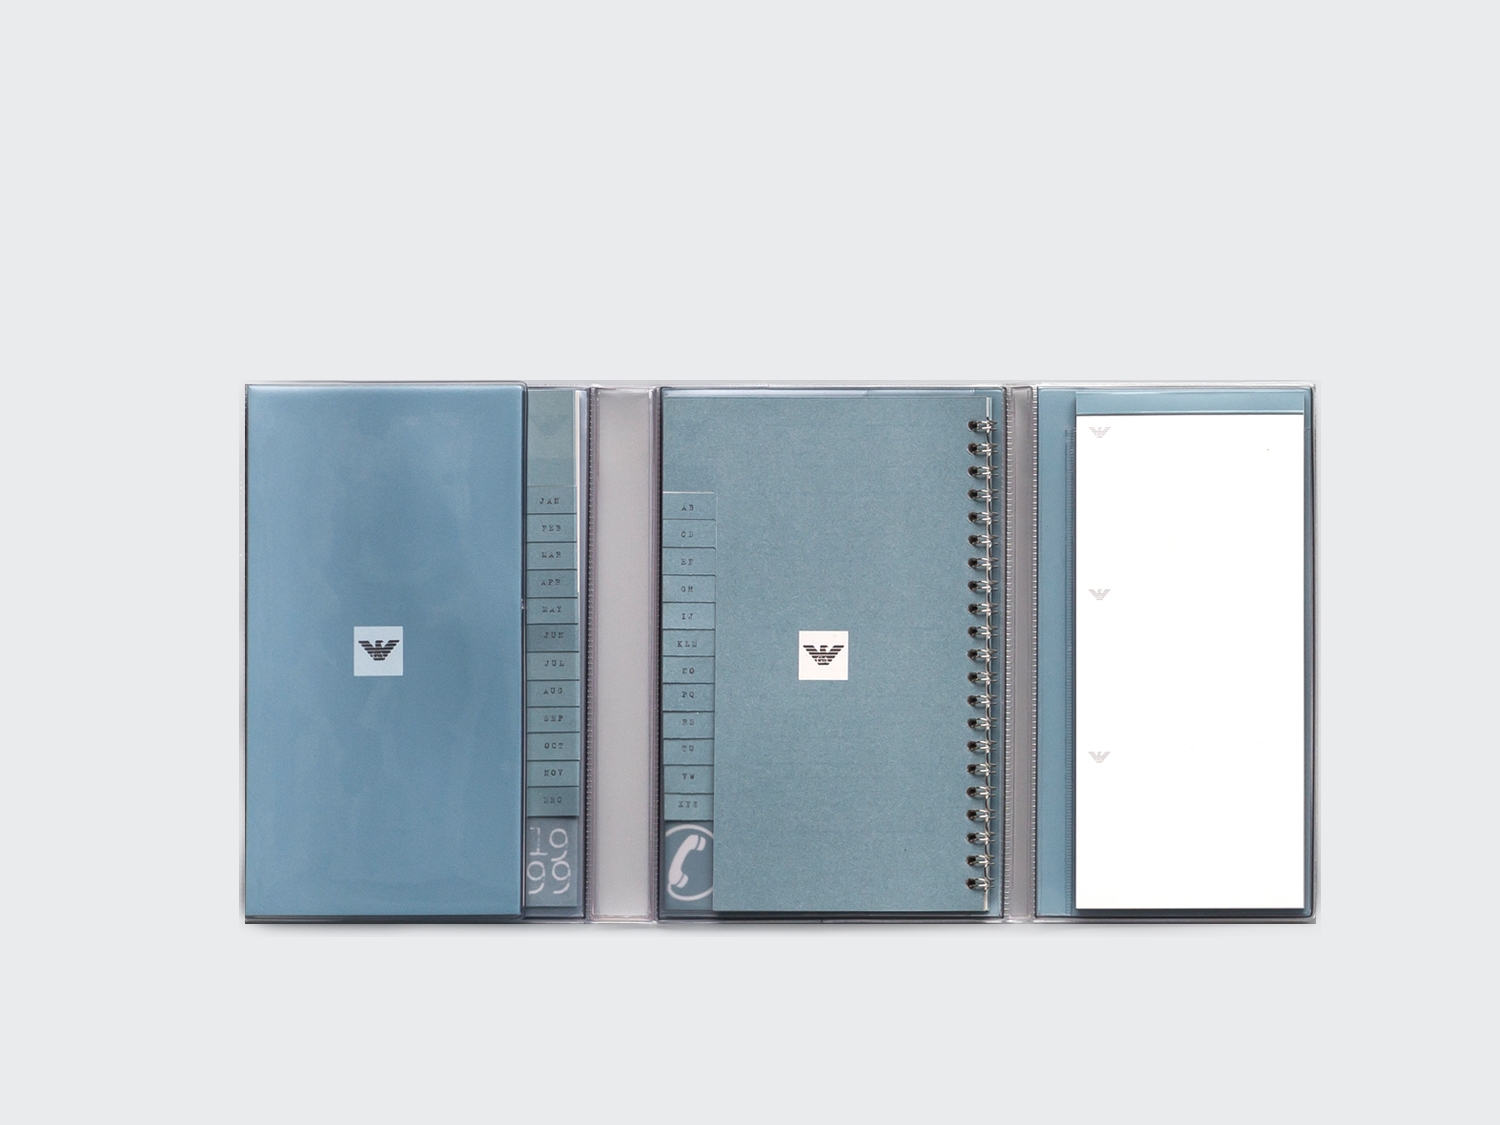 Armani Diary. Notepad, diary and address book. Designed for Emporio Armani 1999.